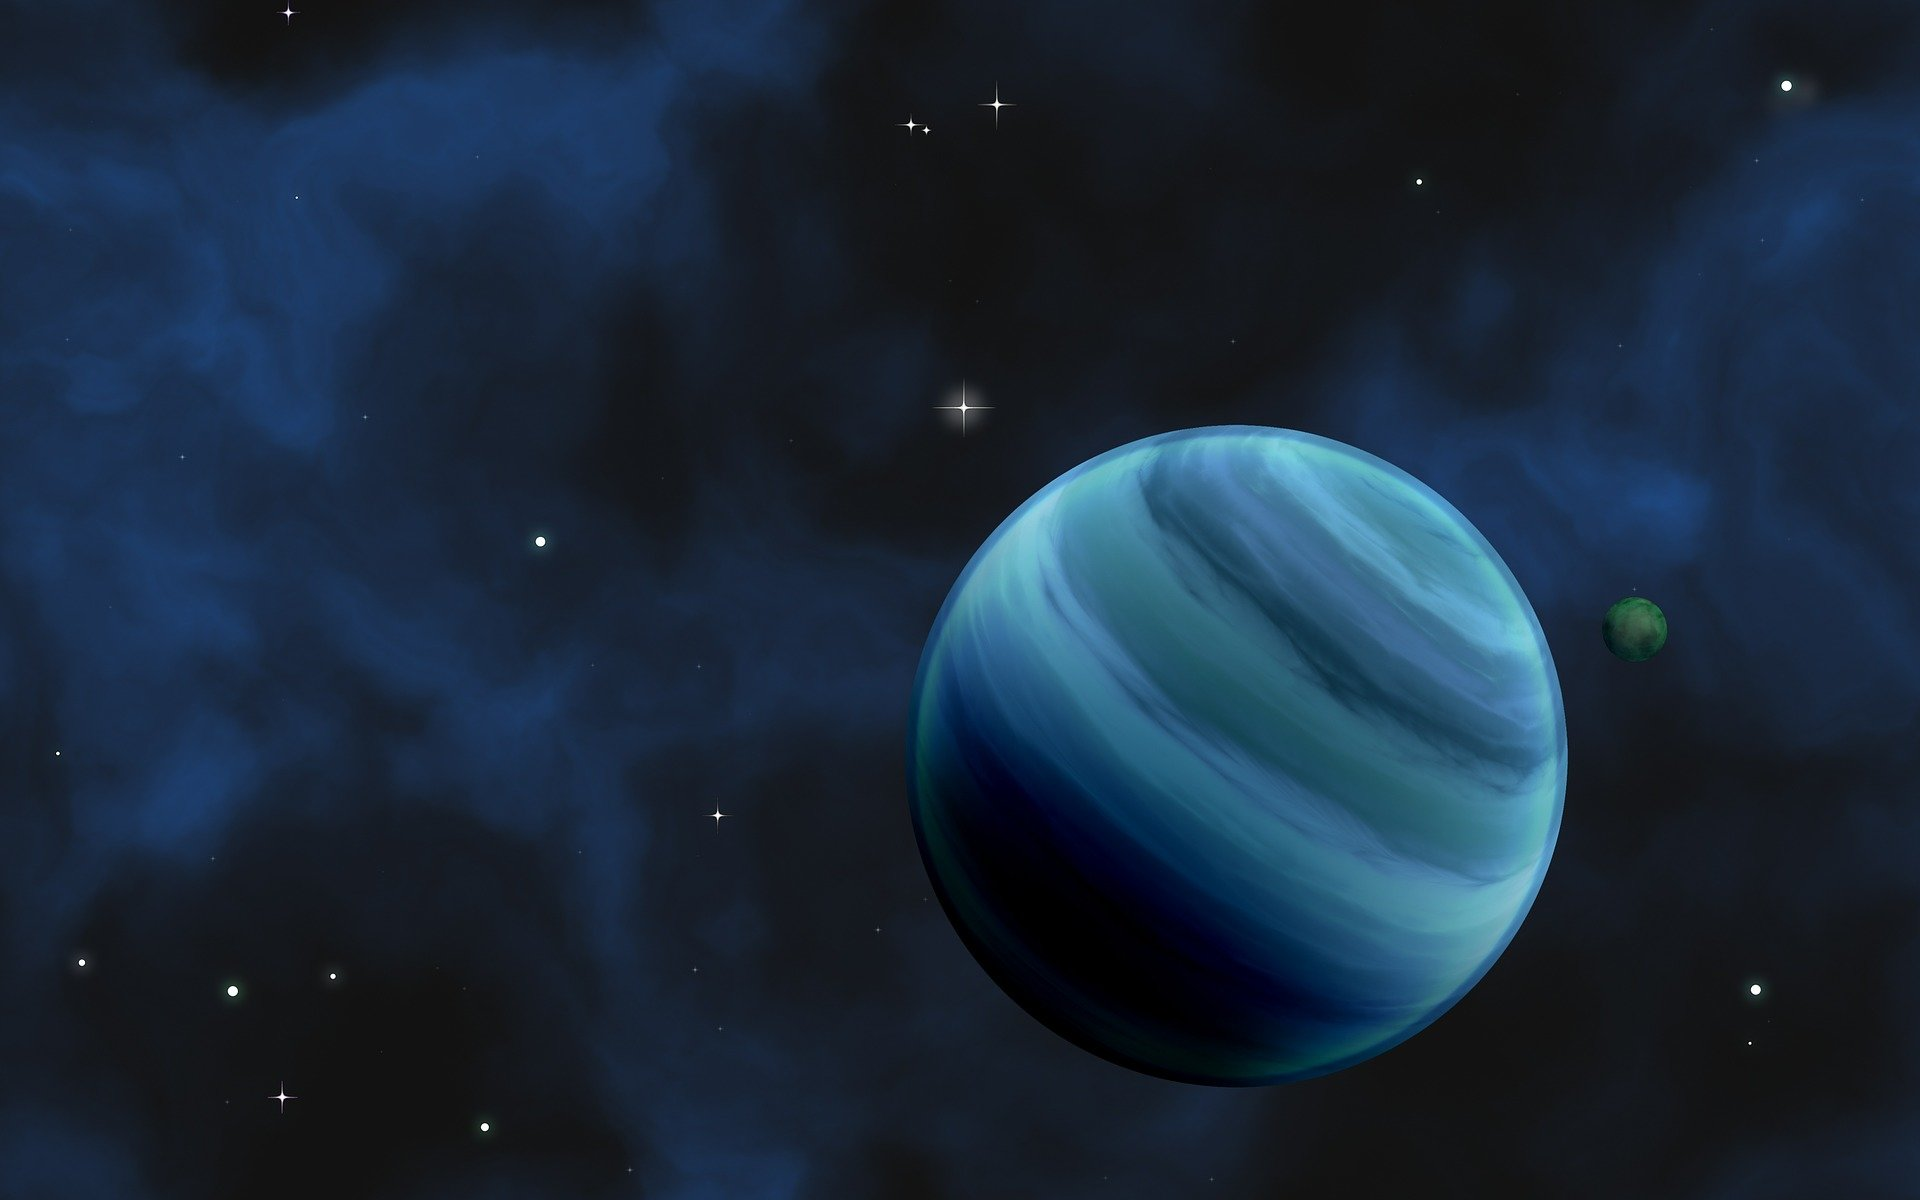 Some exoplanets may be able to see us, too